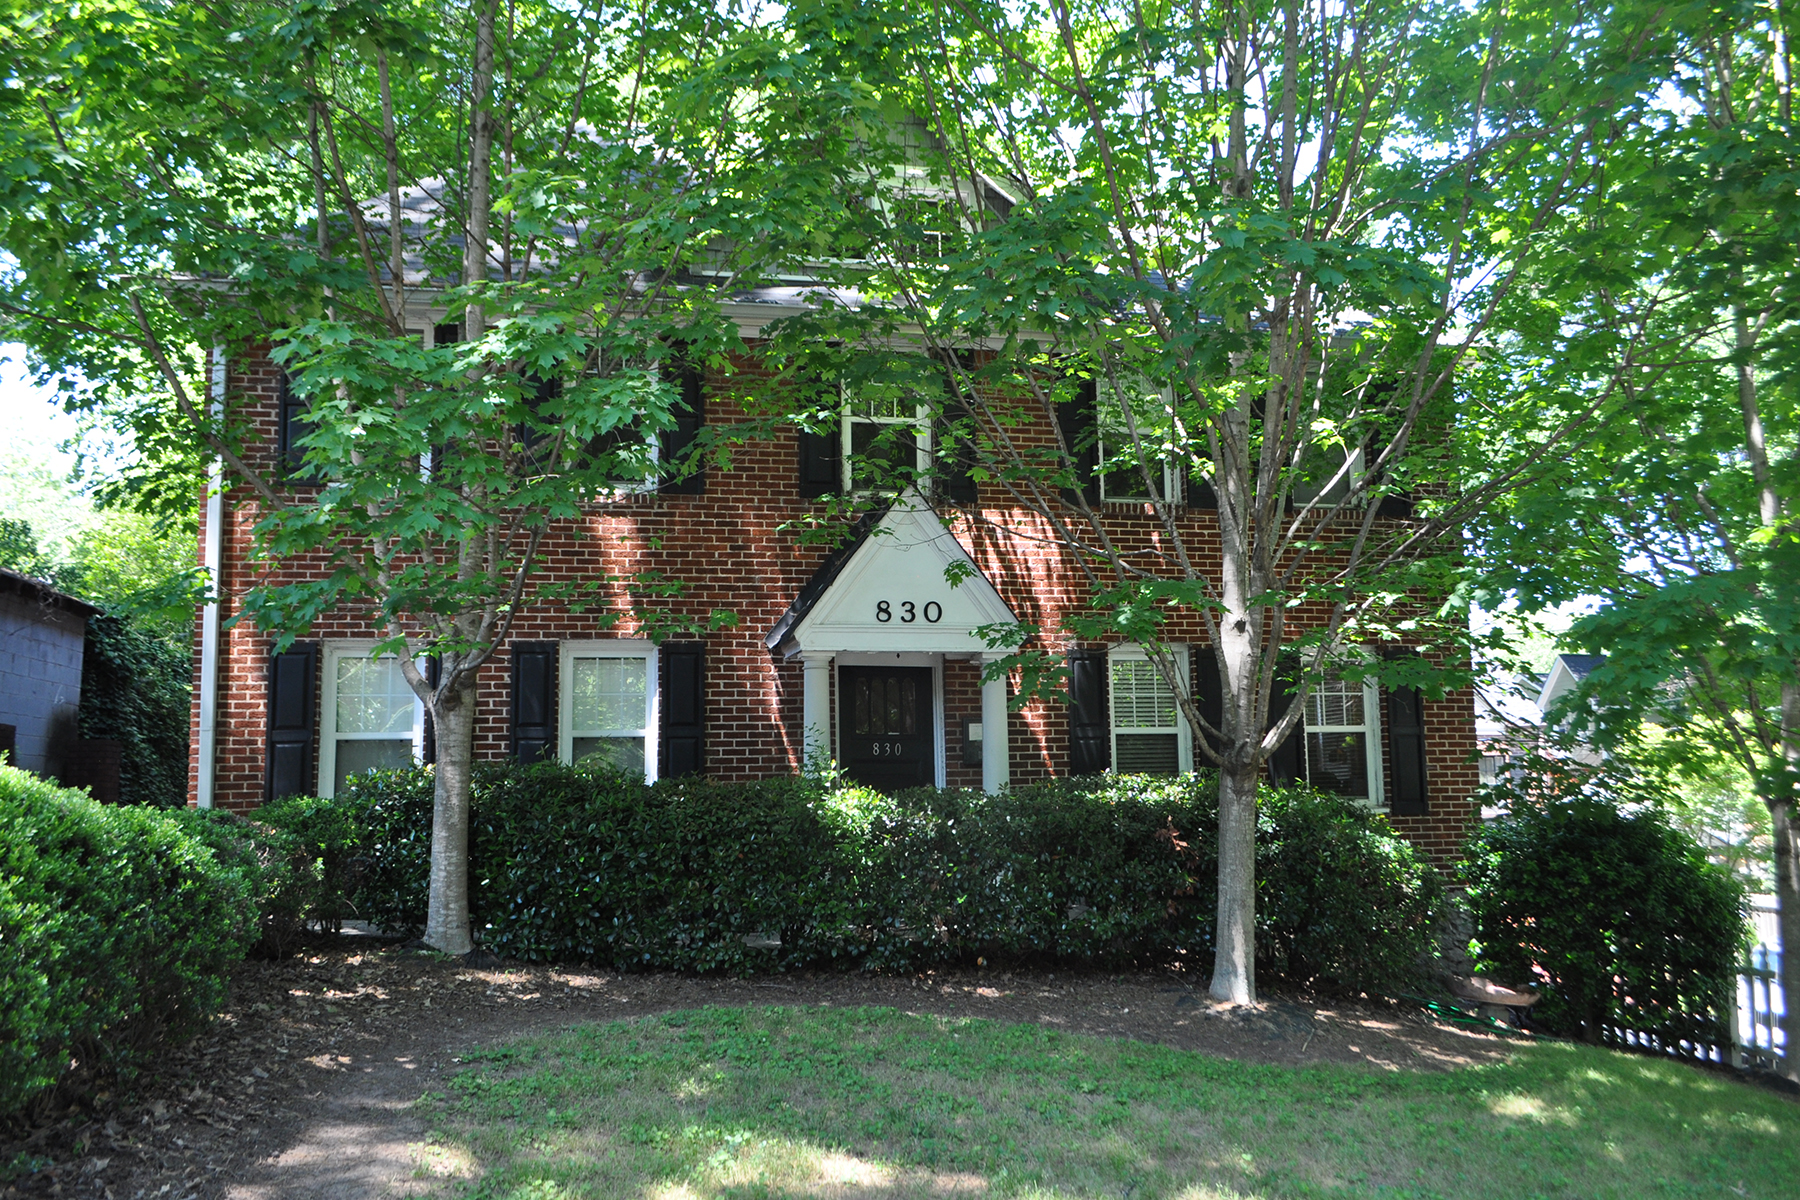 Condominium for Rent at Charming Condo in Virginia Highland 830 Barnett Street NE Unit 7 Atlanta, Georgia 30306 United States